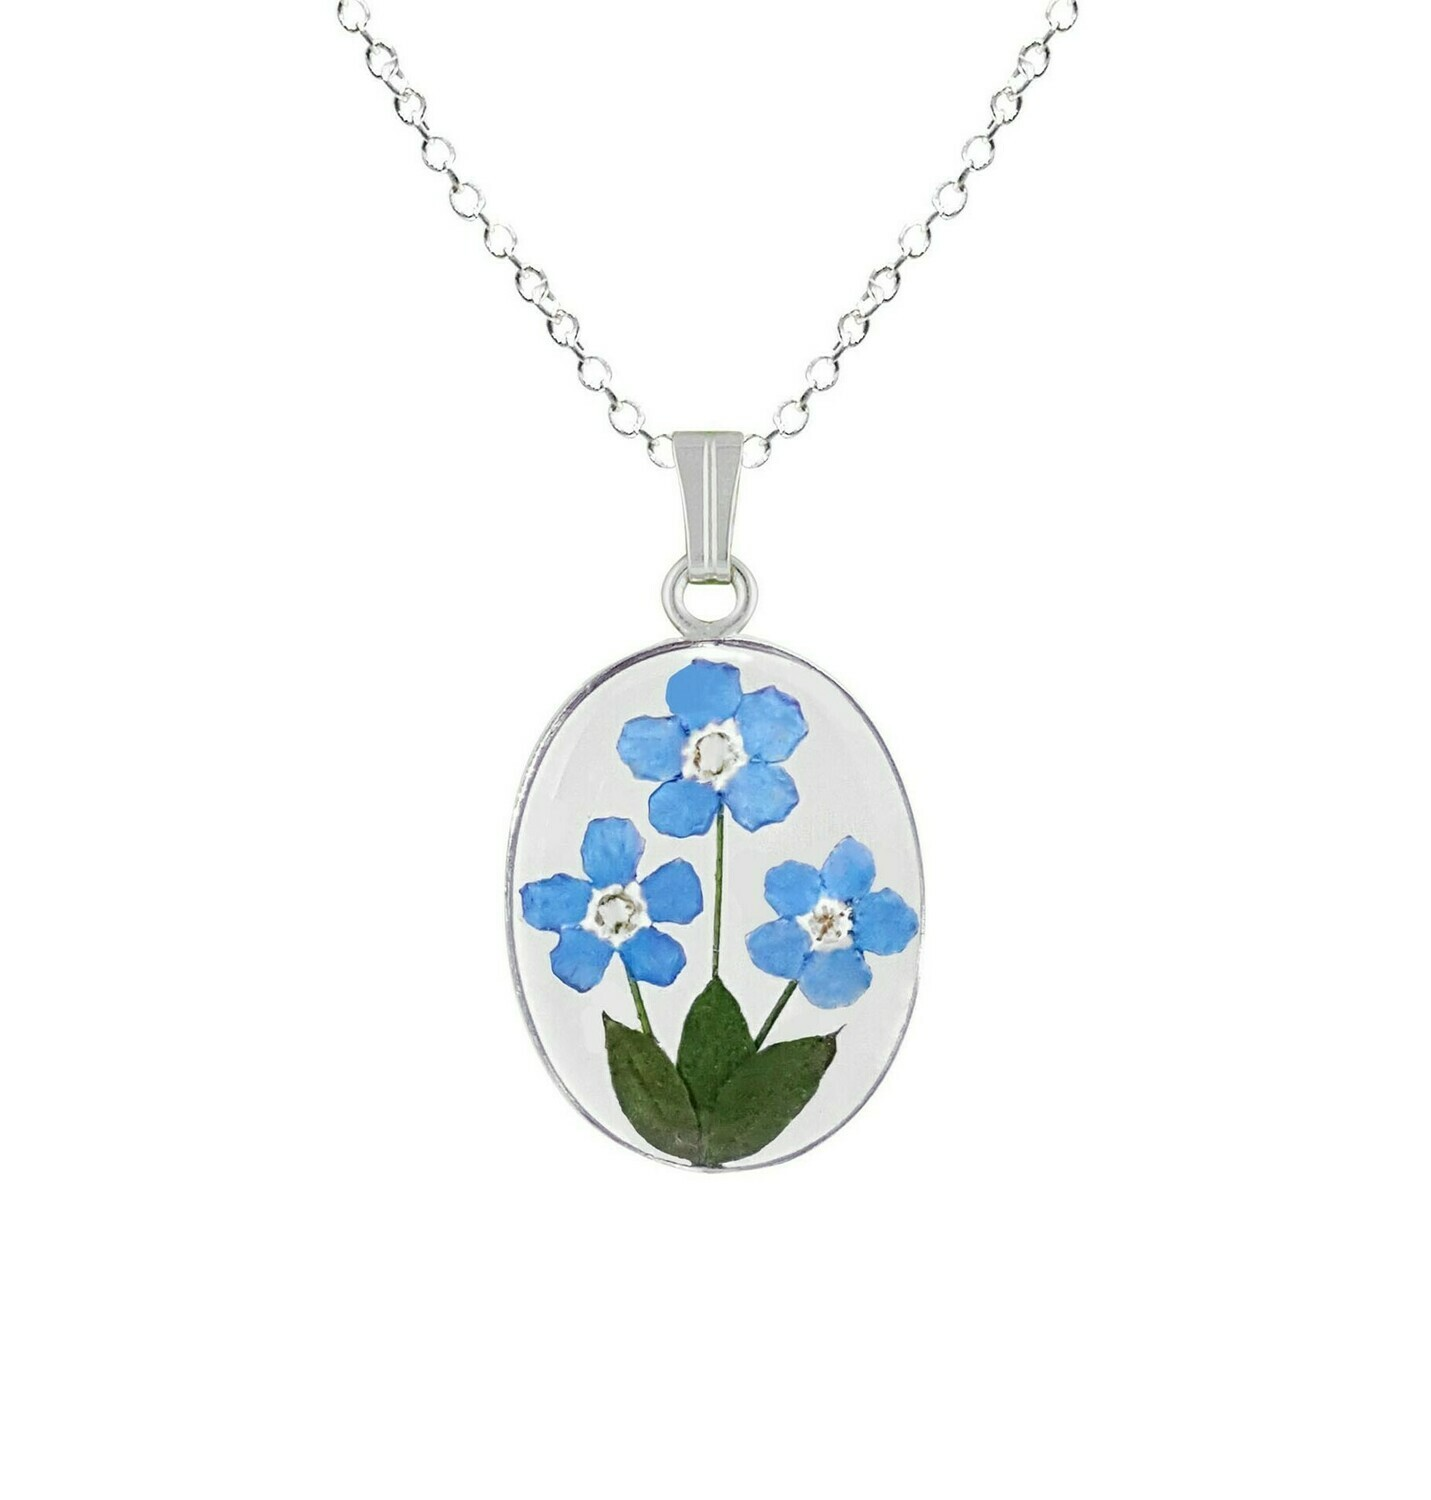 Forget-Me-Not Necklace, Medium Oval, Transparent